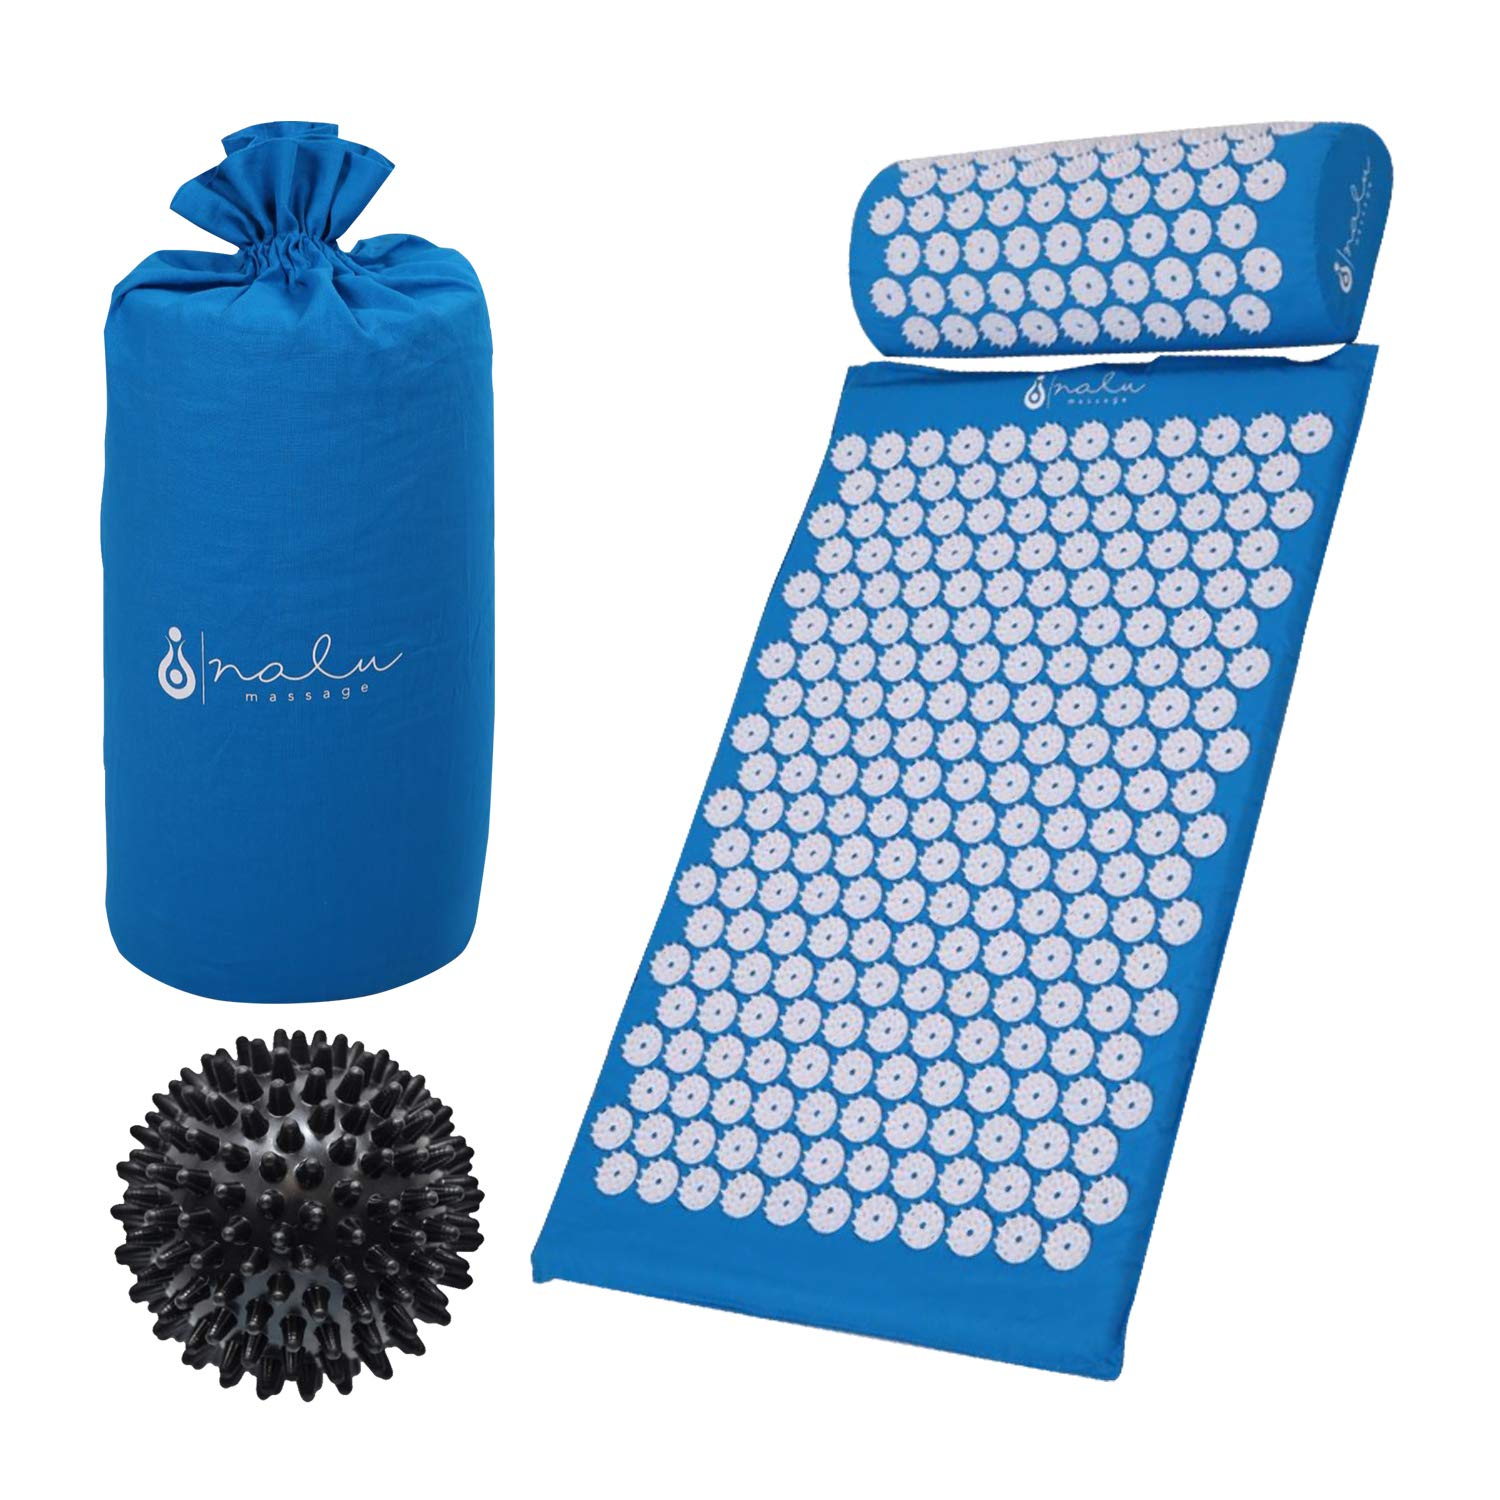 Acupressure Mat and Pillow Set + Spiky Reflexology Ball - Ebook and Wall Chart- for Sciatica, Chronic Back and Neck Pain, Fibromyalgia, Plantar Fasciitis and Stress Relief, Blue